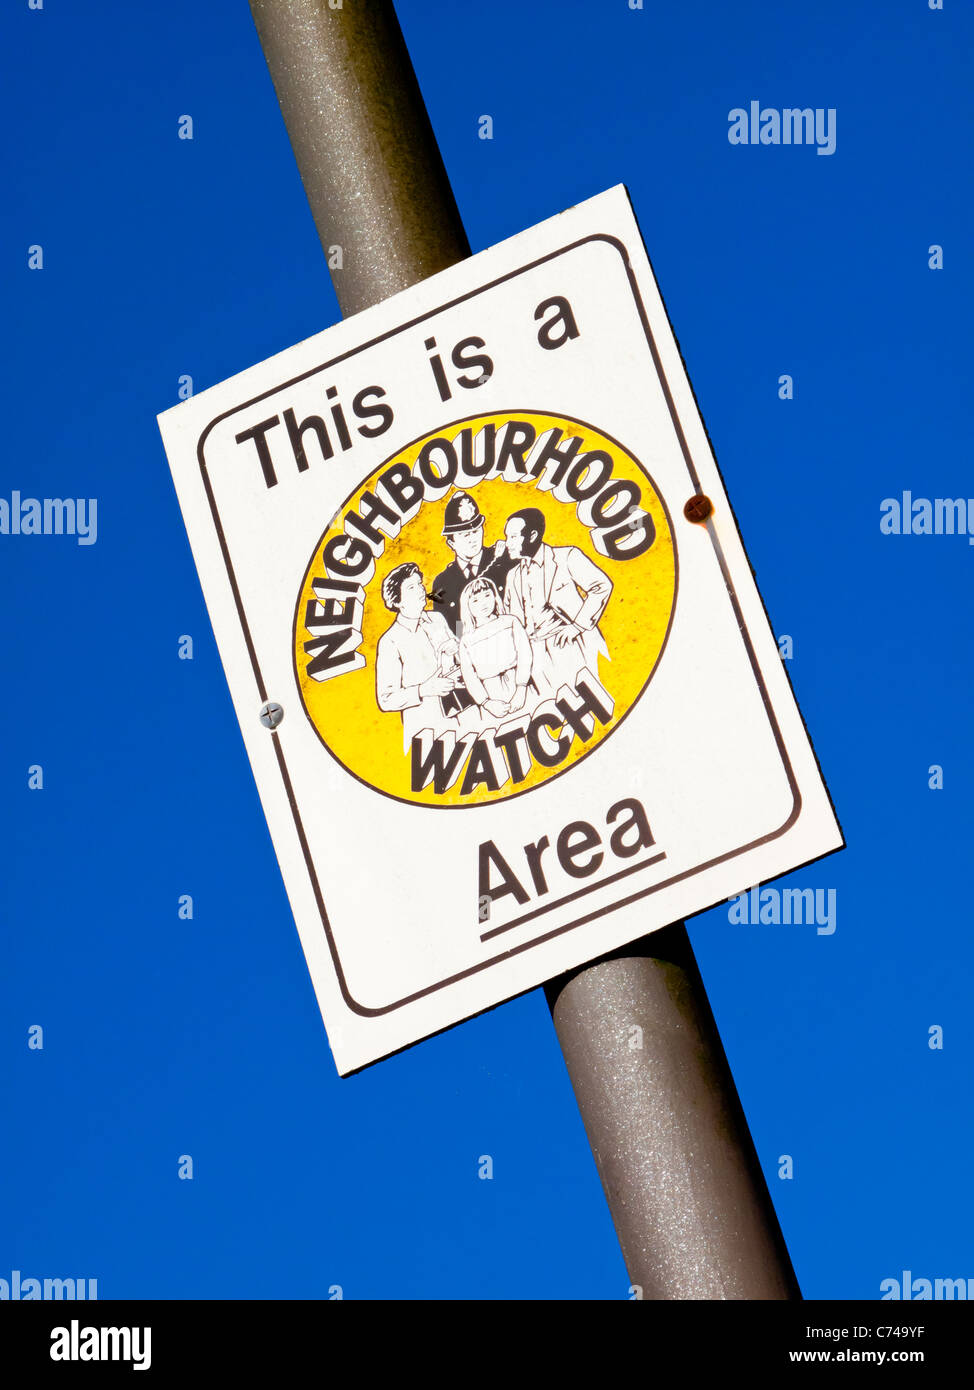 Neighbourhood Watch Area sign in a UK village designed to prevent petty crime - Stock Image